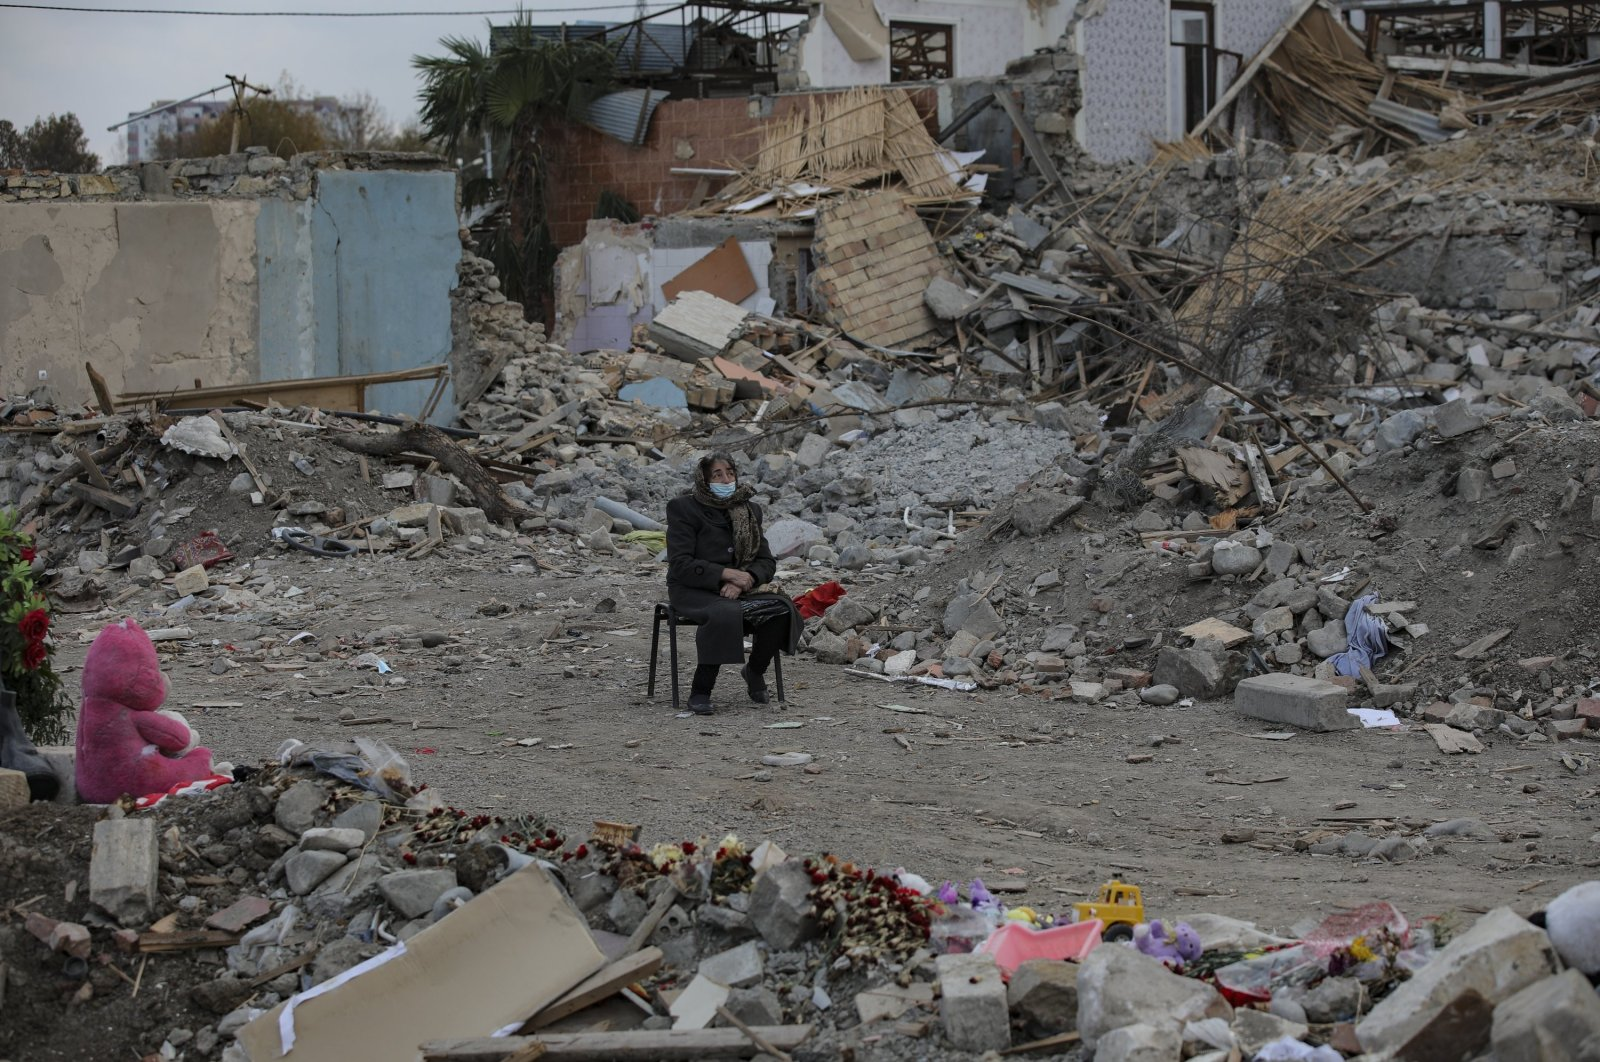 An Azerbaijani citizen sits in front of the ruins of her home, destroyed by rocket fire from Armenian forces, in Ganja, Azerbaijan, Nov. 28, 2020. (AP Photo)